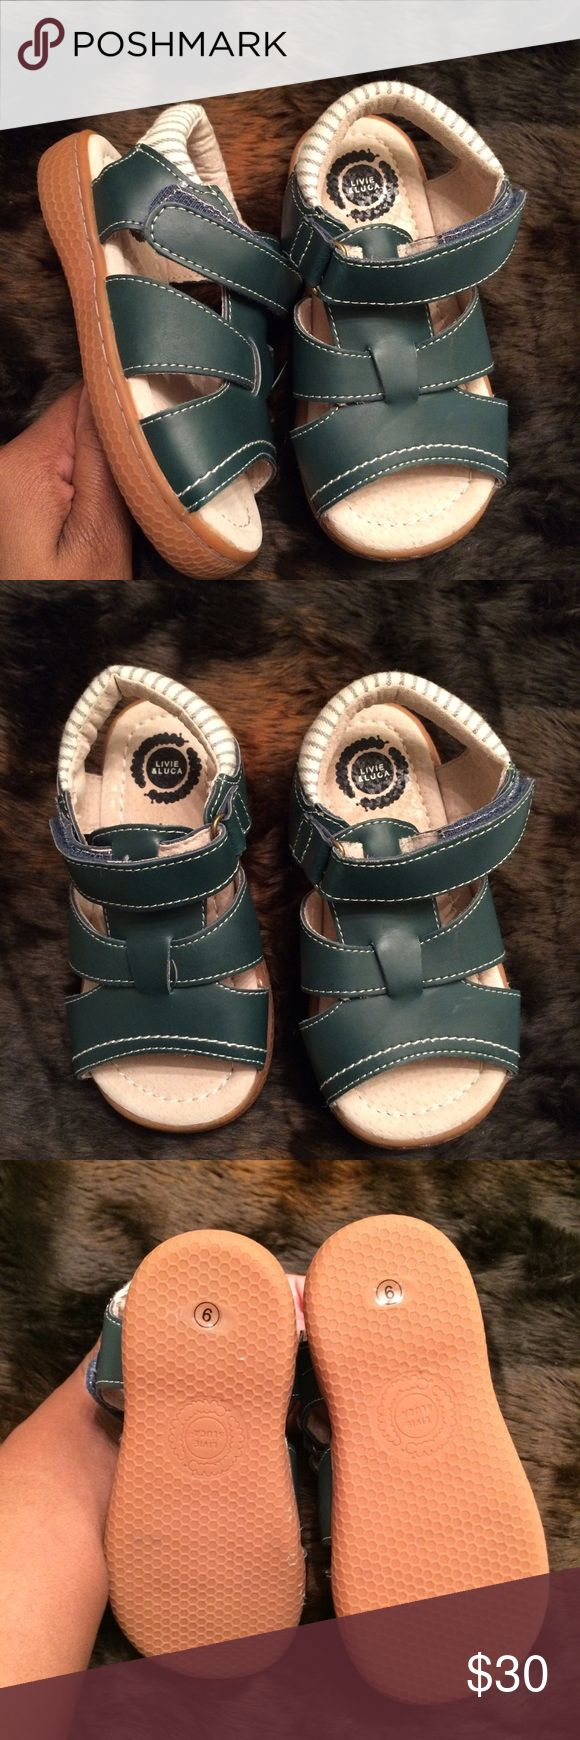 Livid & Luca Sailor Sandal These sandals are well made and perfect for your little man! They are composed of soft leather which makes them durable enough for even the most active baby boy! They feature soft foot beds as well as padded ankle straps designed to give him the most comfortable fit! Add these to his collection today! ‼️‼️The website describes them as vintage blue but I get hints of a nice deep Forrest green color 🤷🏾♀️ Livie & Luca Shoes Sandals & Flip Flops